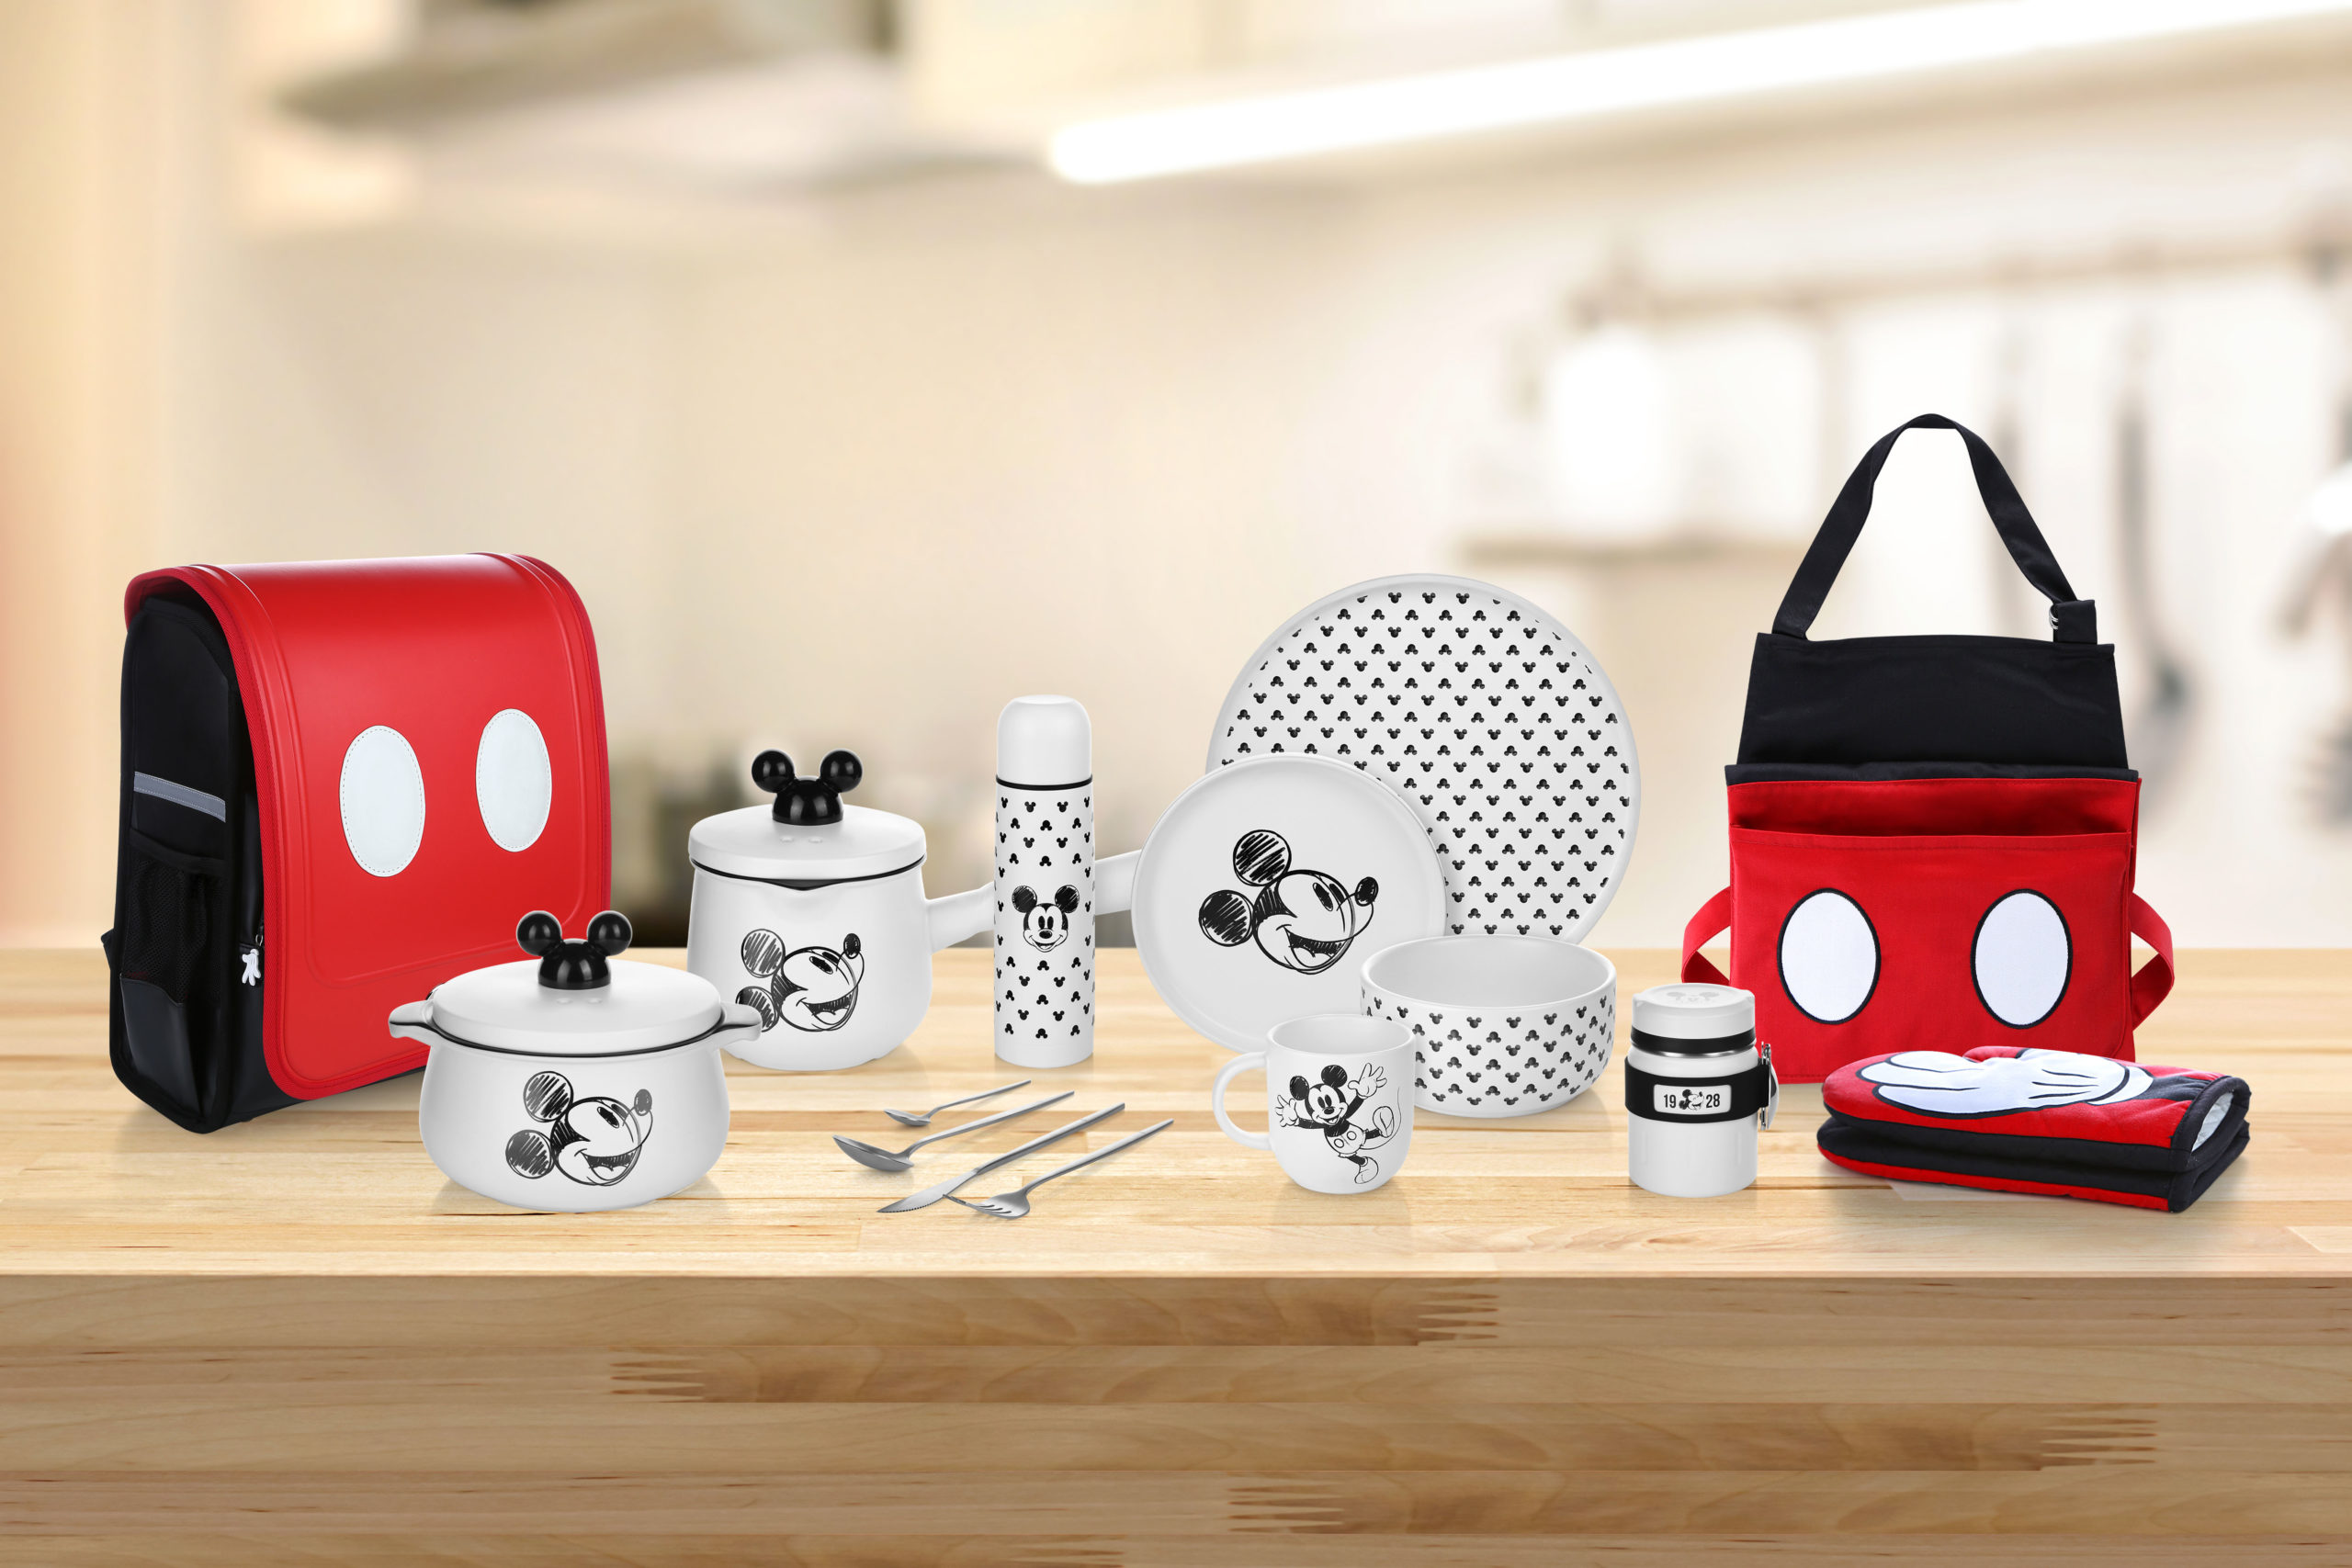 Fairprice Mickey collection